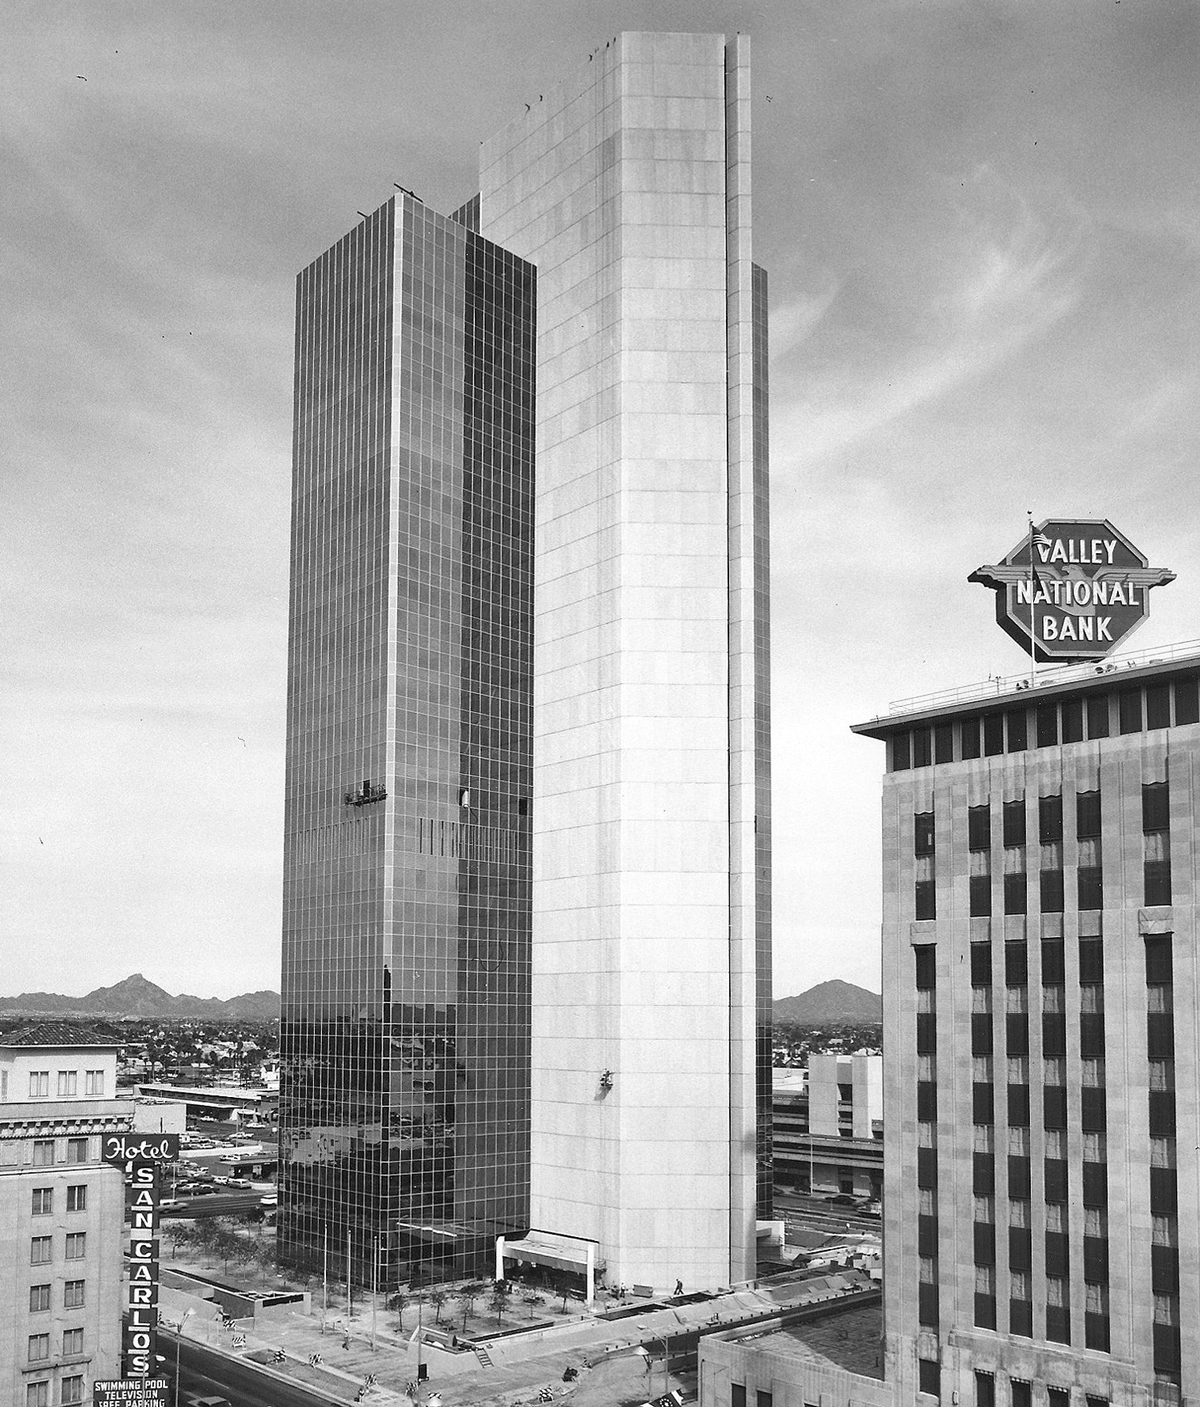 History Adventuring: Why Valley National Bank Abandoned